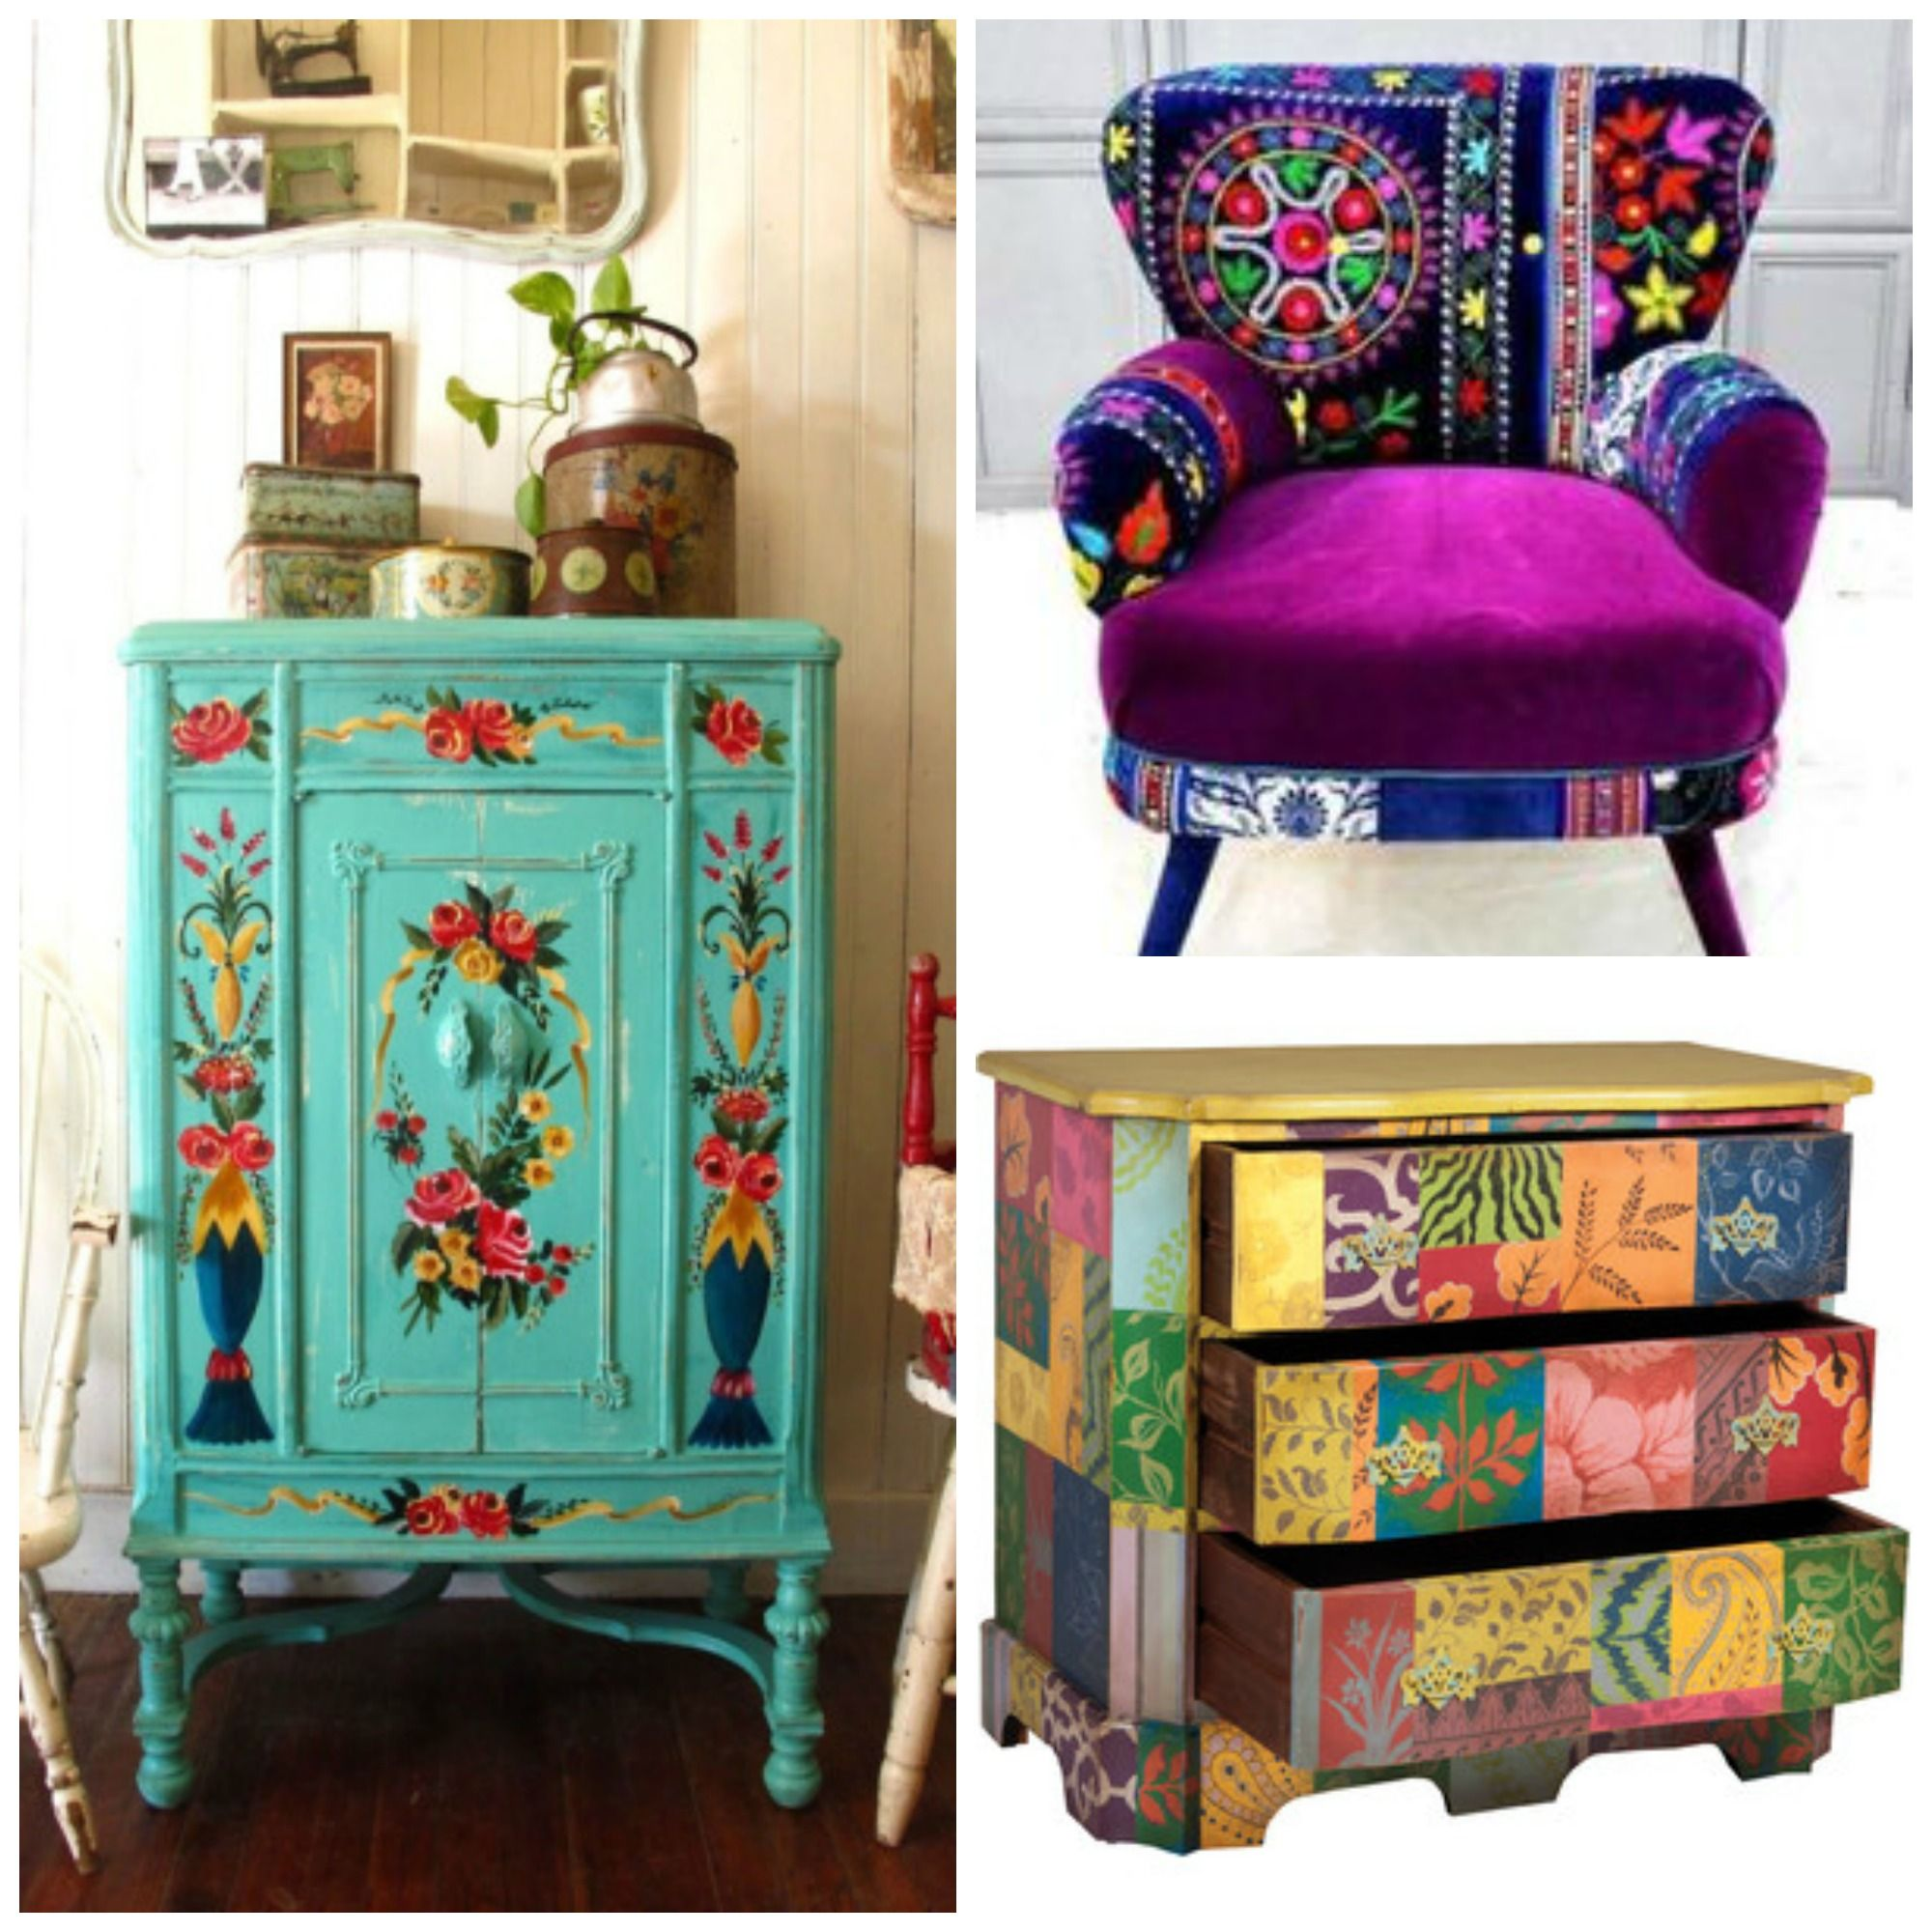 Hippie home decor bohemian interior bohemian decor style for Home decor furniture